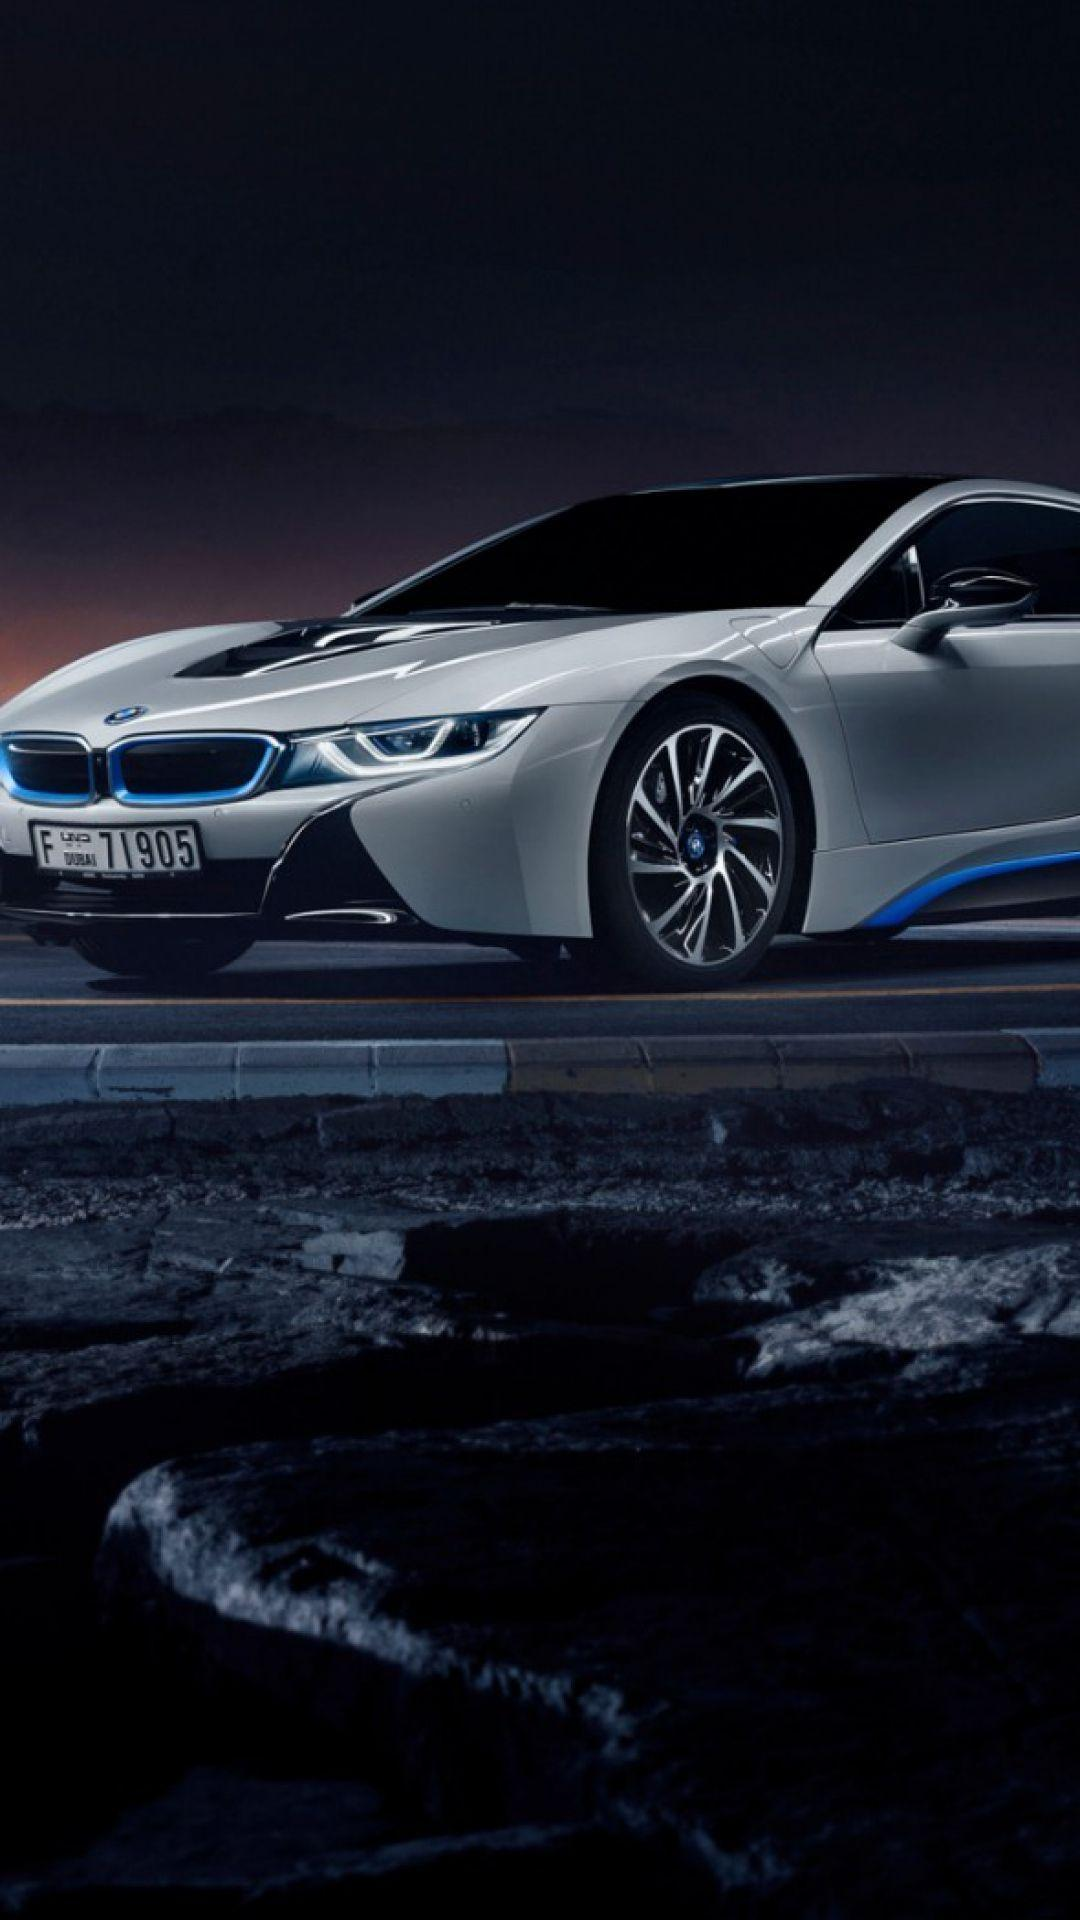 Free Download 2017 Bmw I8 Wallpapers 1080x1920 For Your